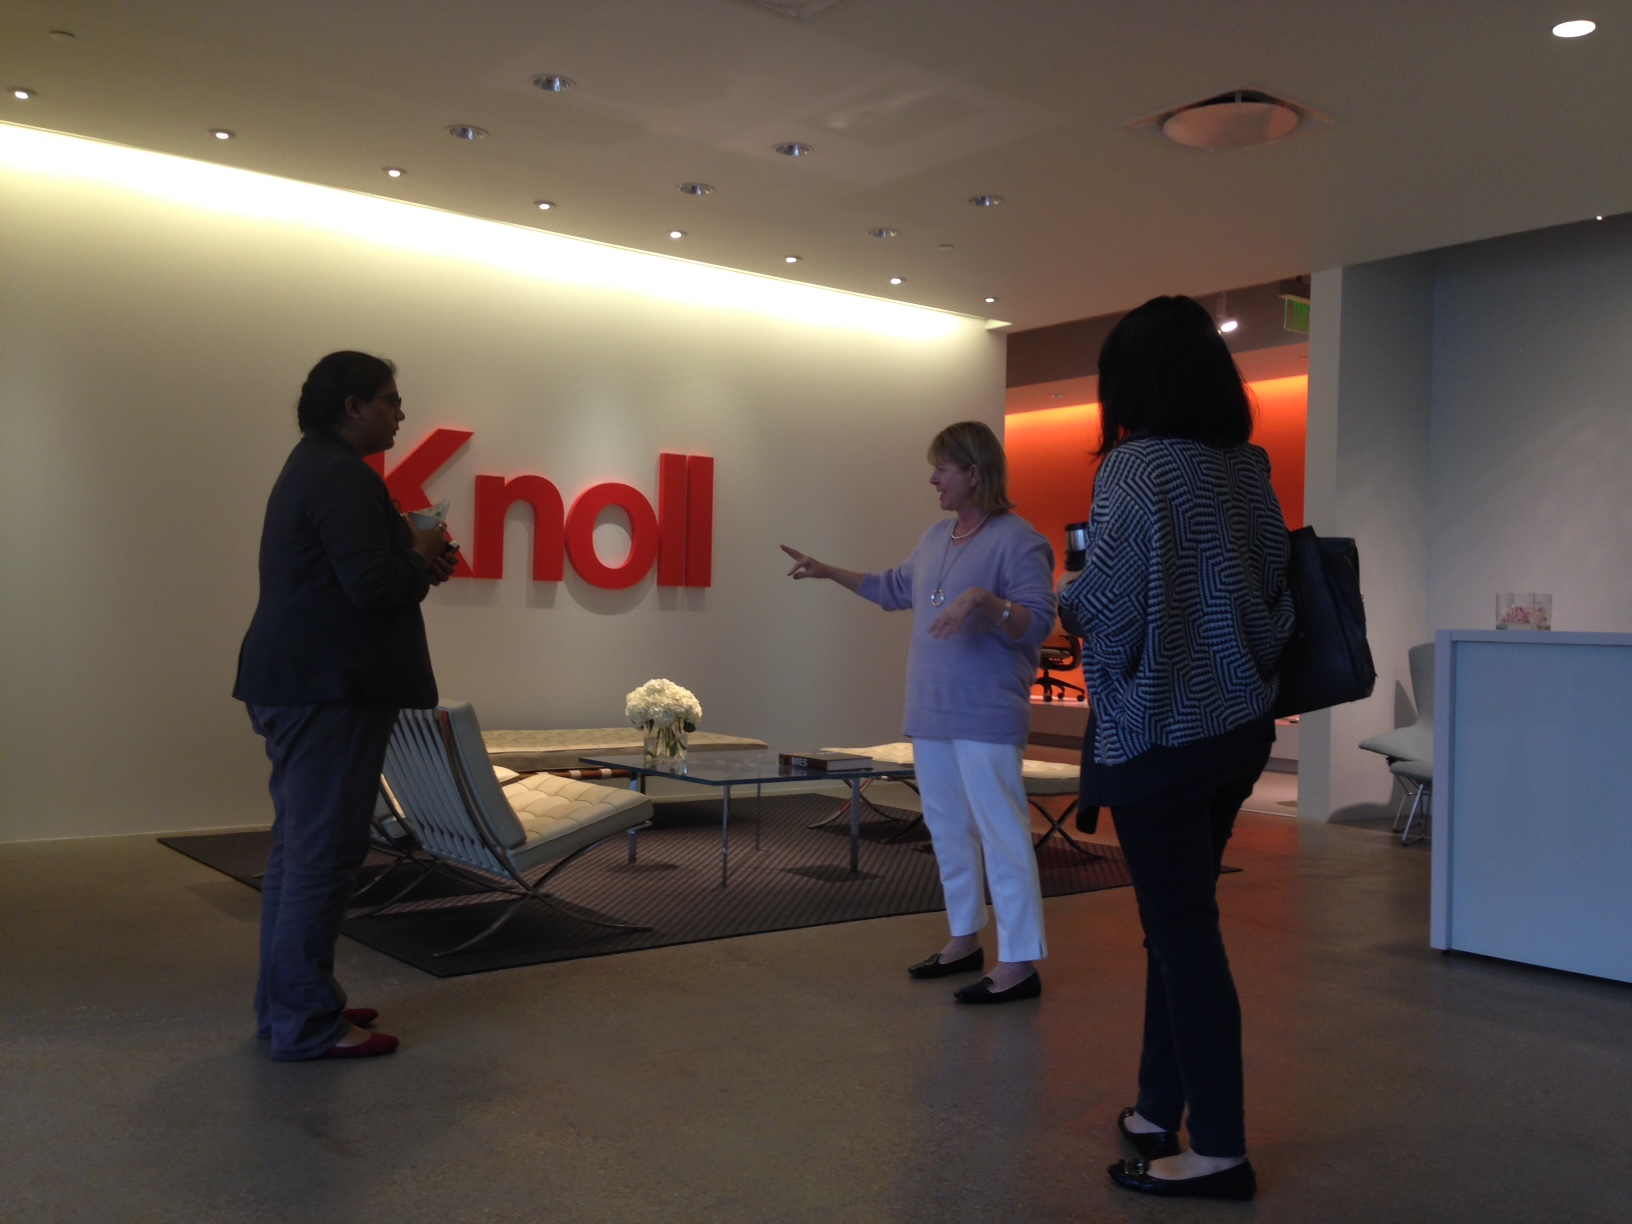 Student Mentoring: Historical Perspective at Knoll